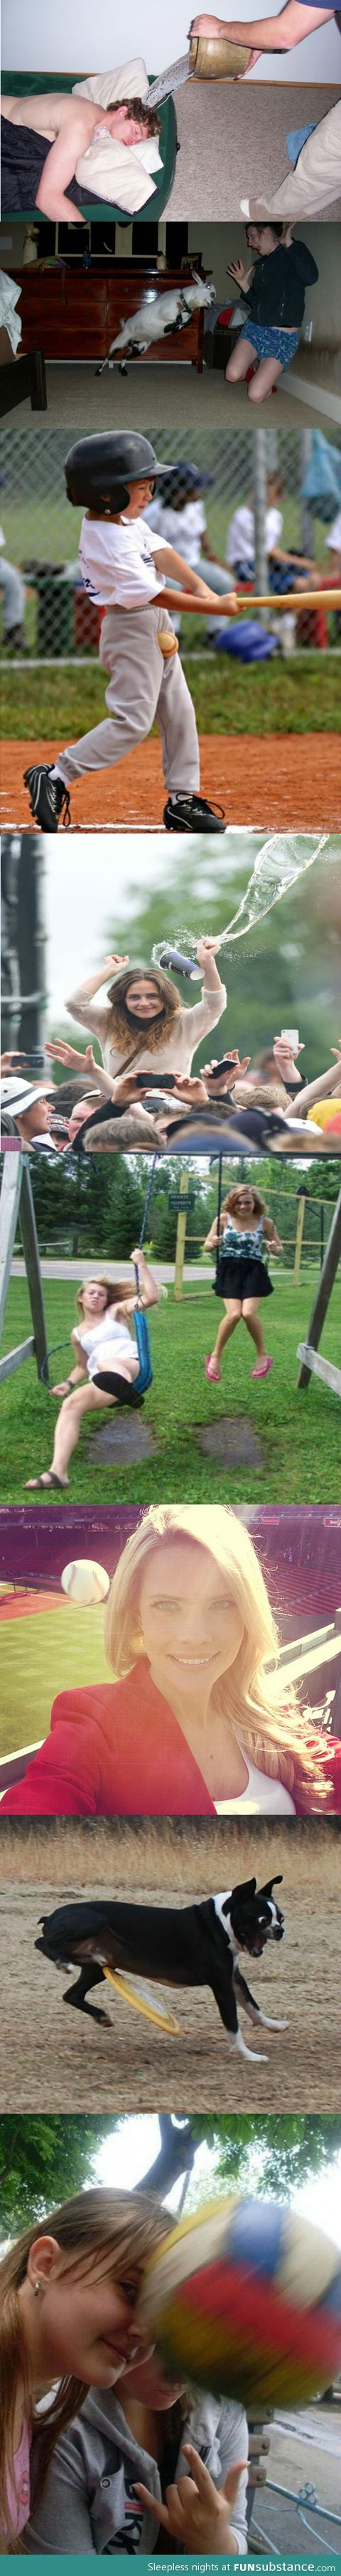 funny-picture-perfect-timing-compilation